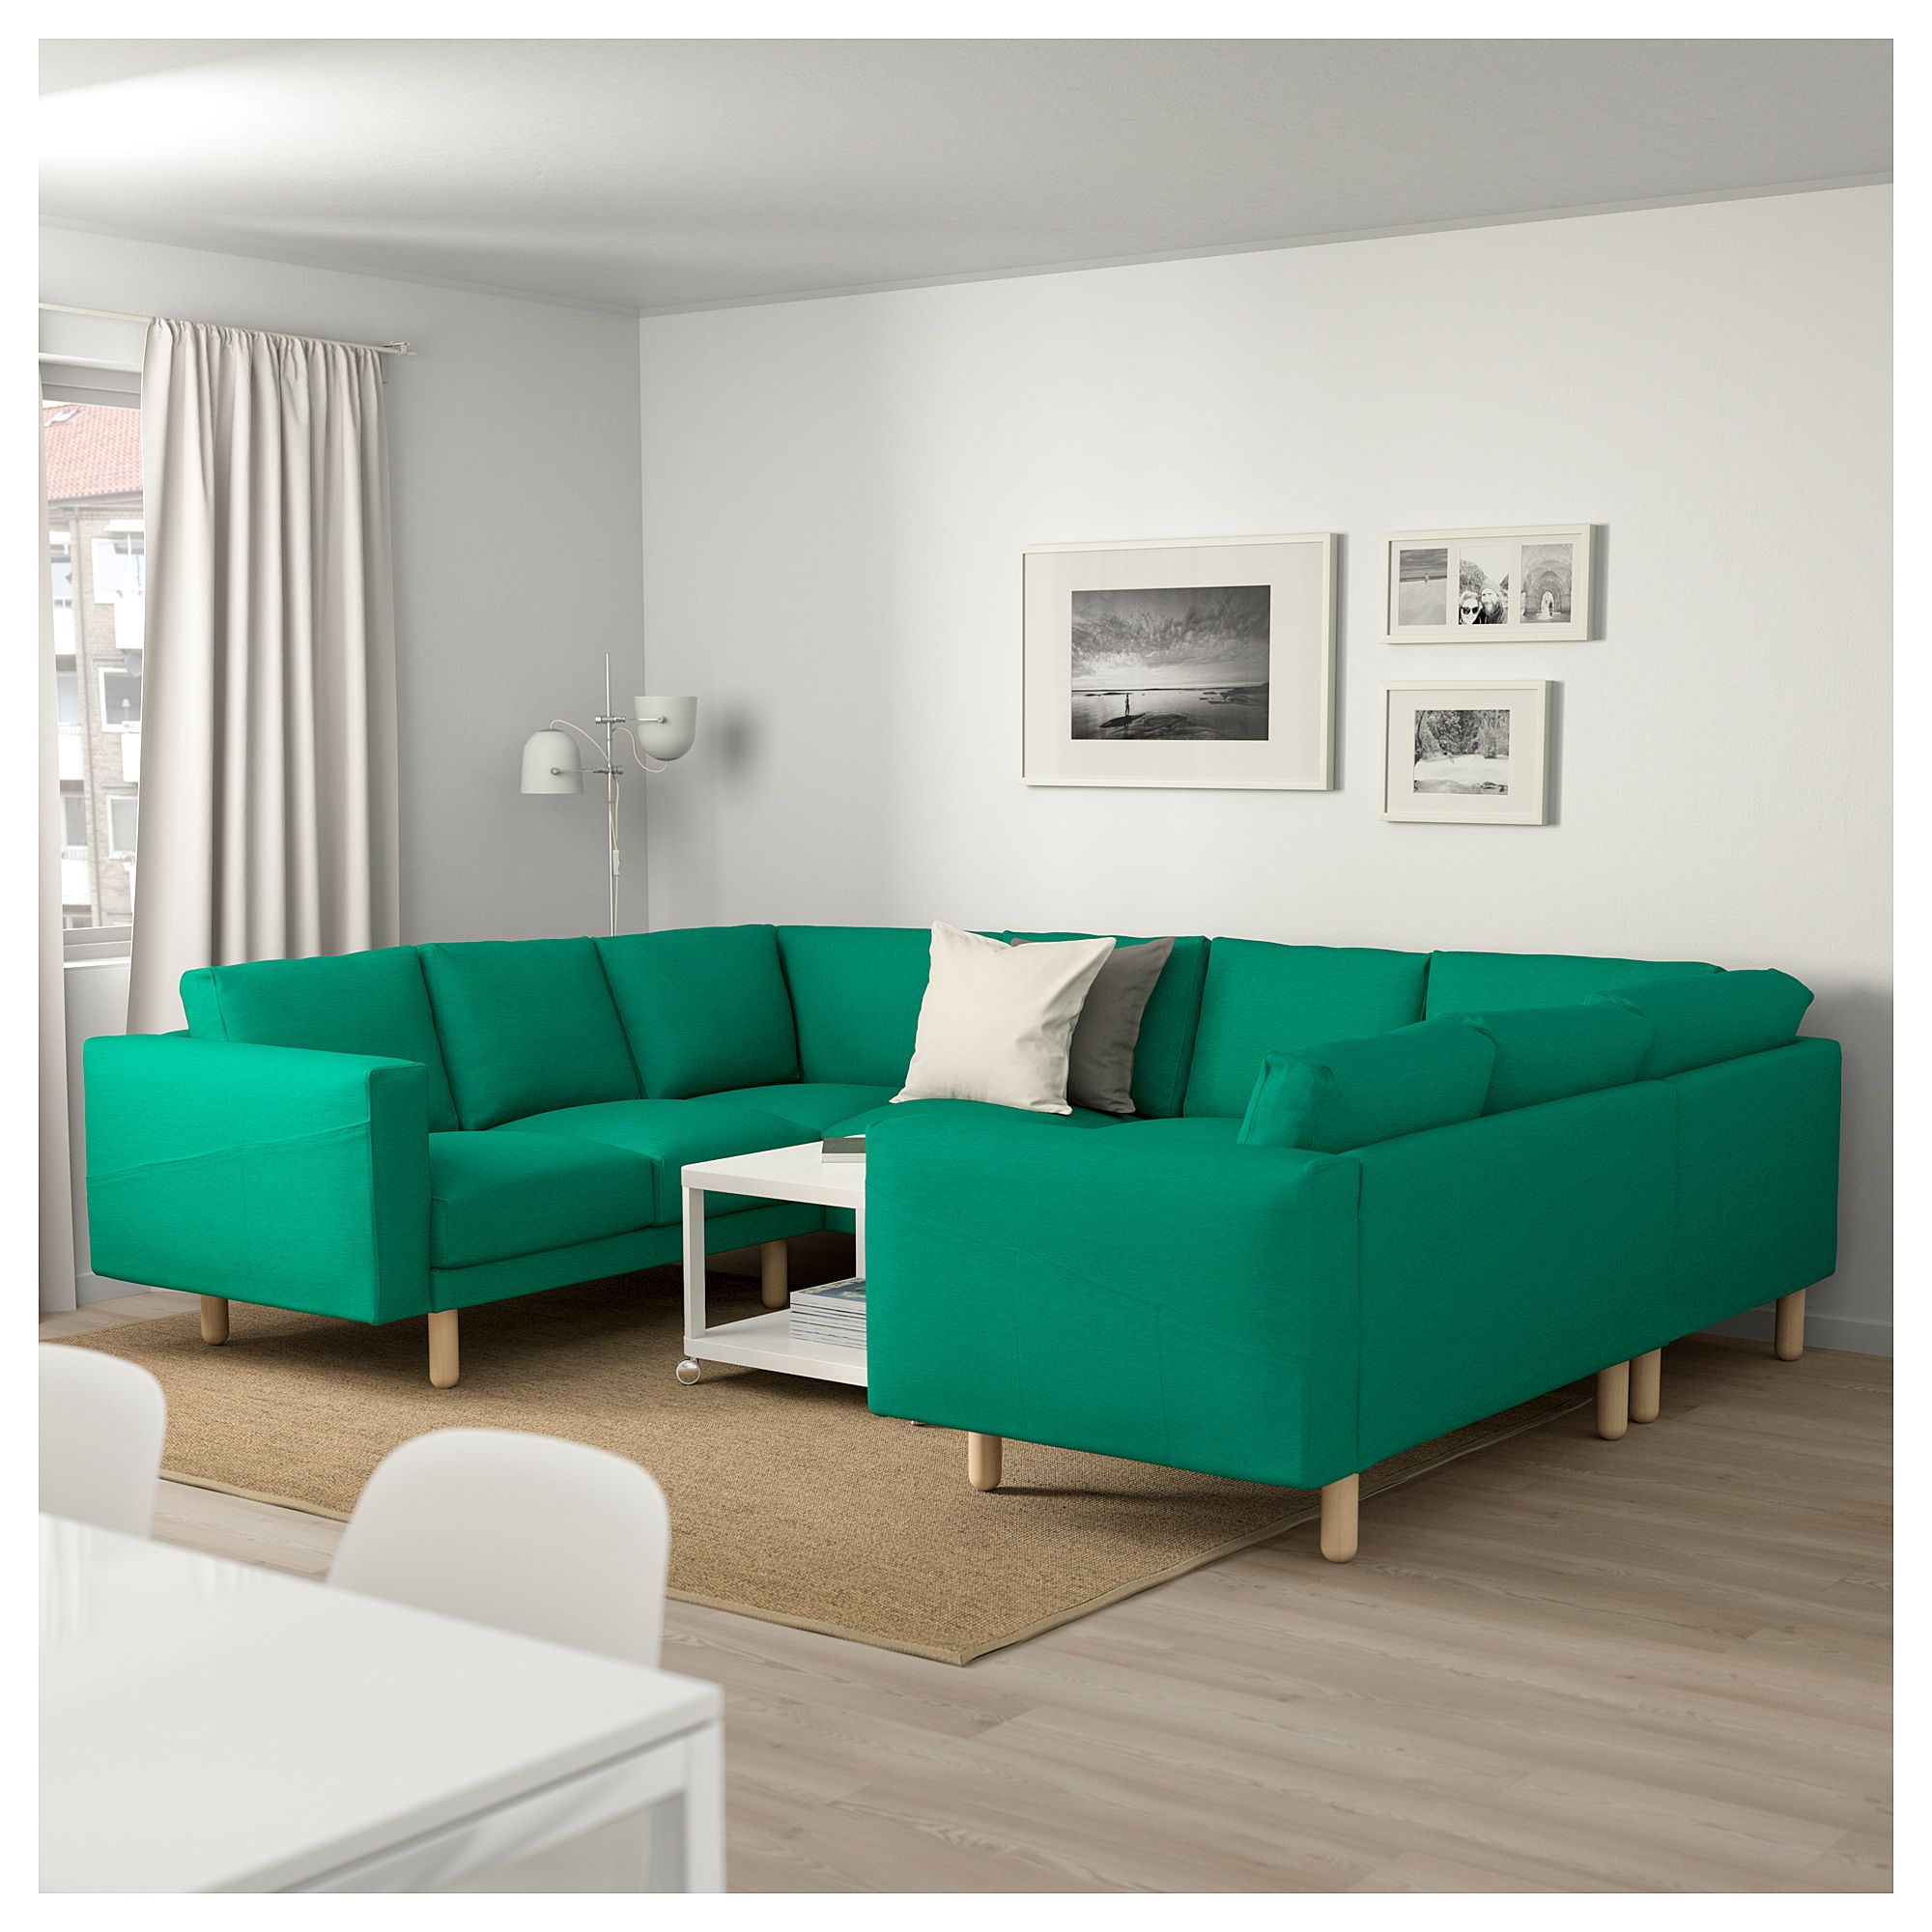 U Shaped Sectional Sofa Ikea Furniture And Home Furnishings Home Decoration Norsborg